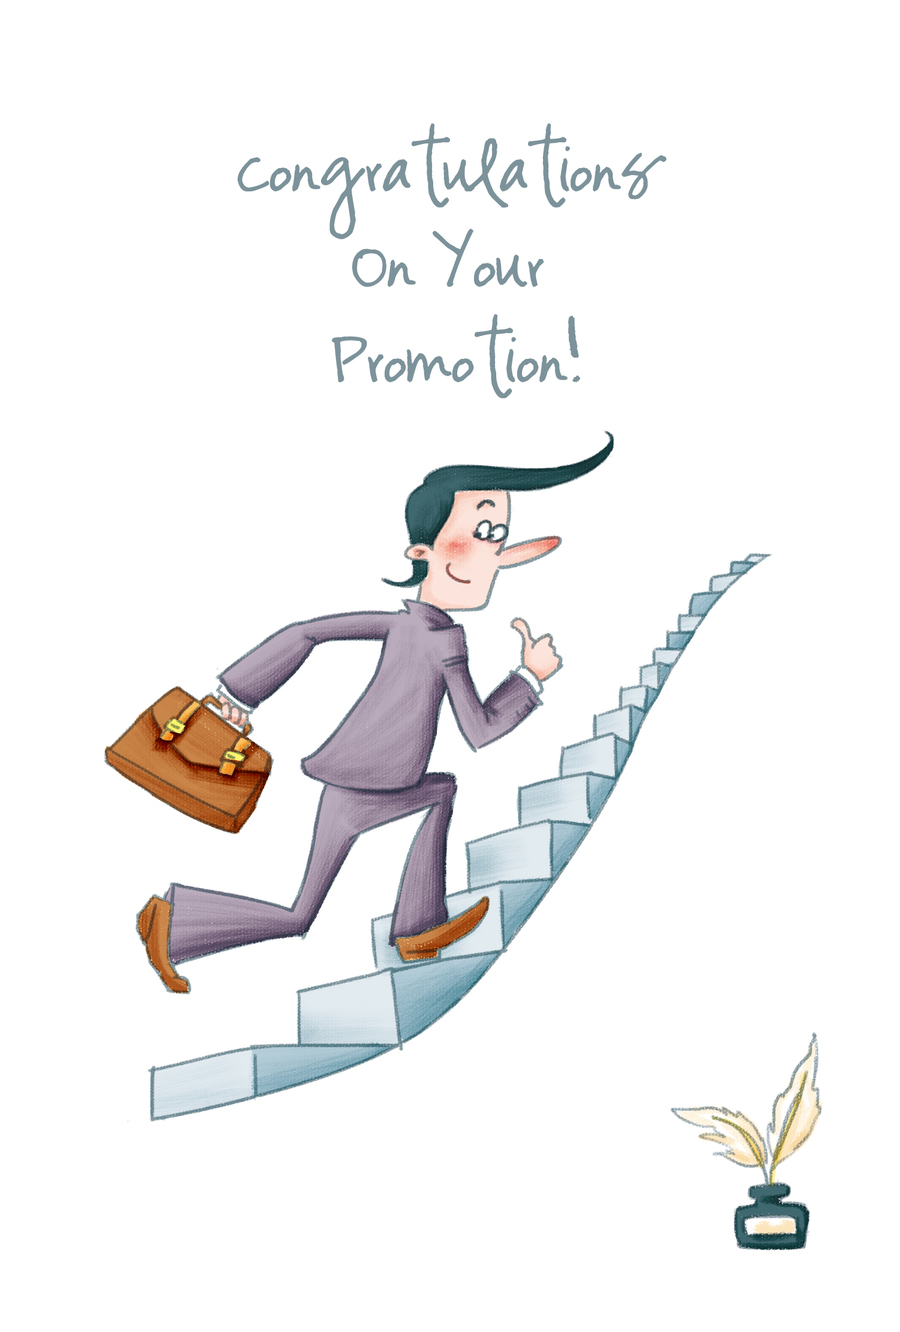 Download congratulations on your promotion quotes clipart Promotion.